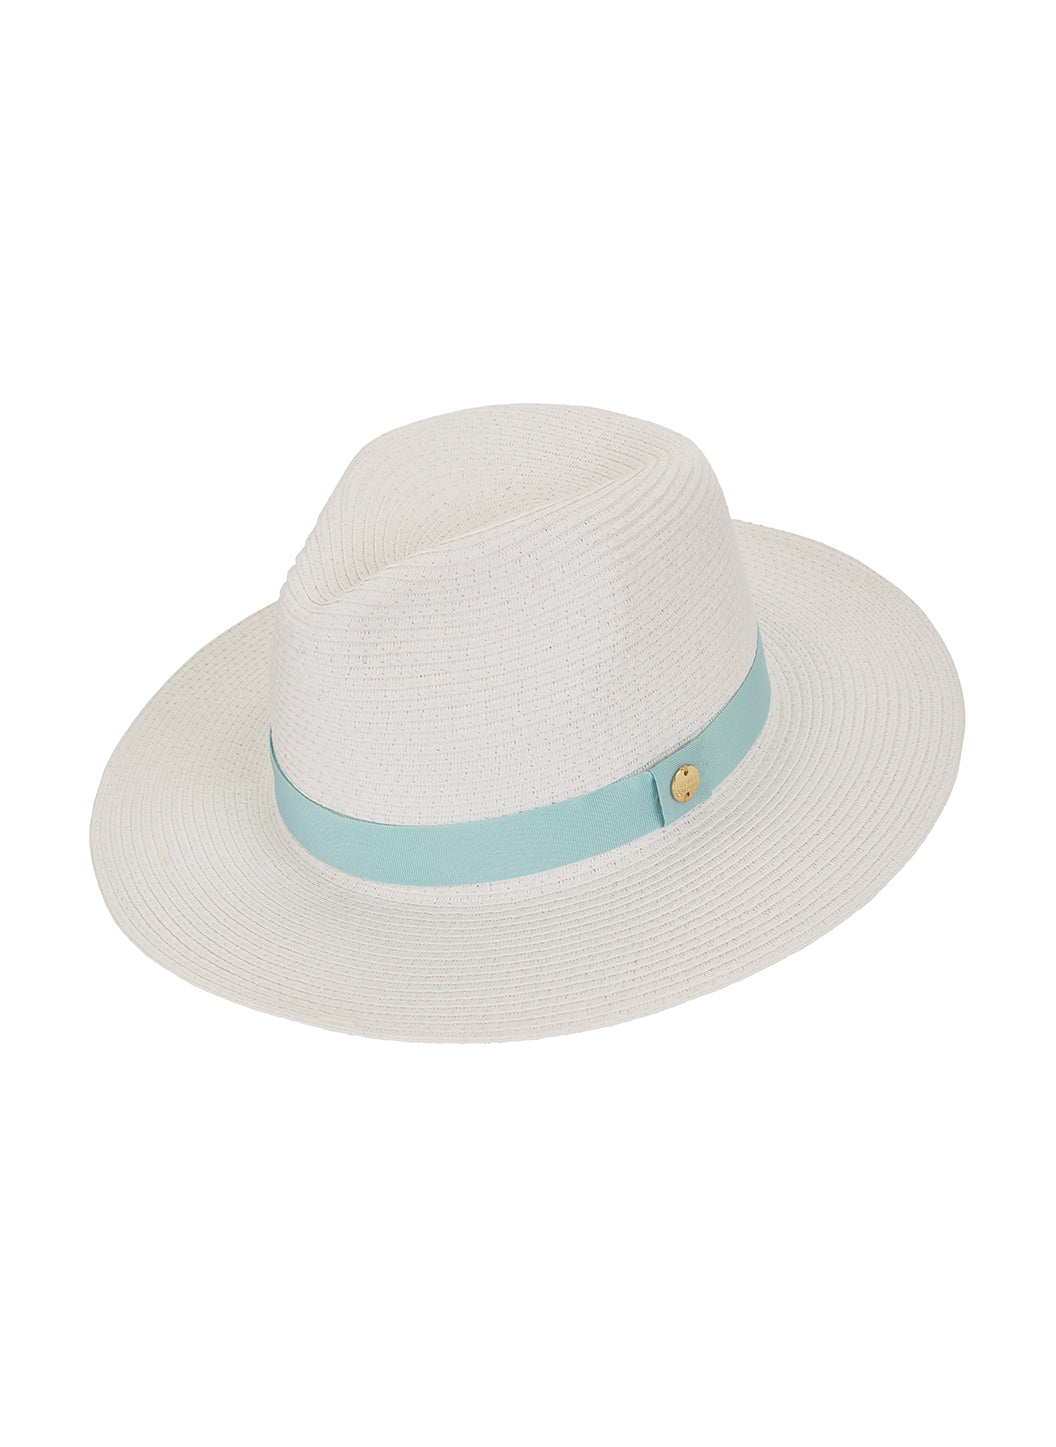 Fedora Hat White Mint